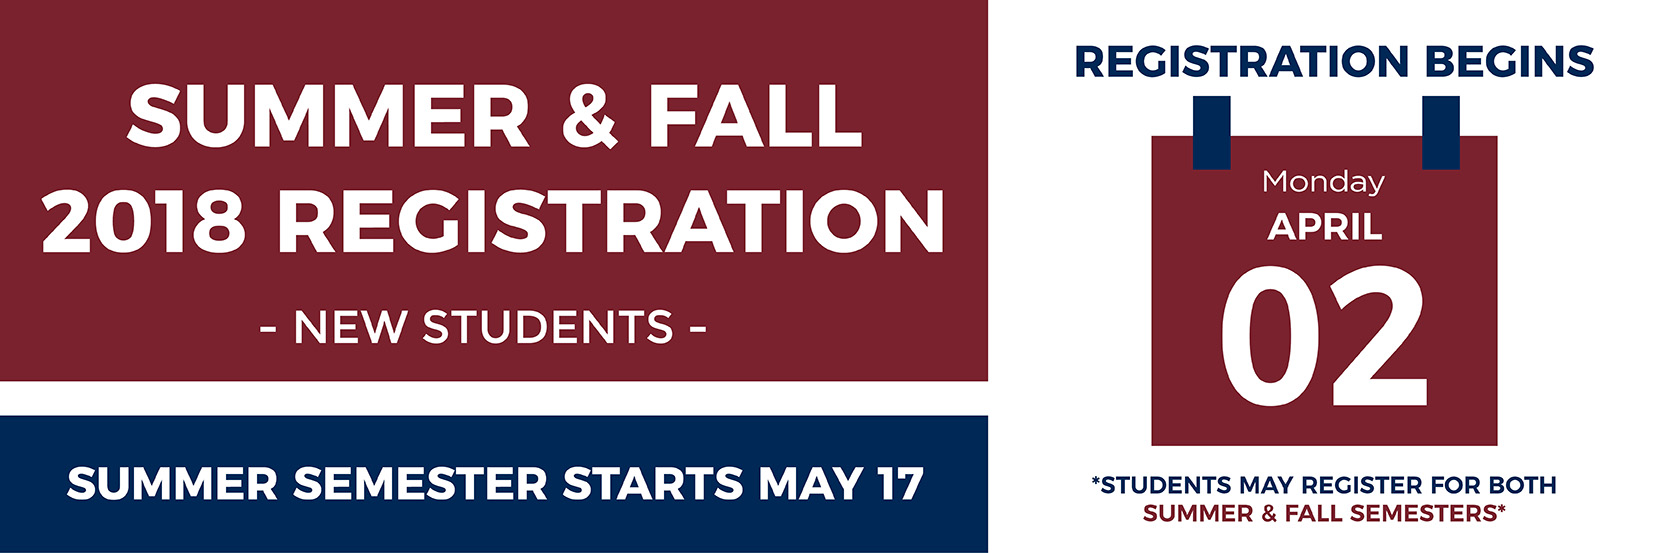 Summer and Fall Registration Calendar Graphic; Registration begins April 2 for New Students.